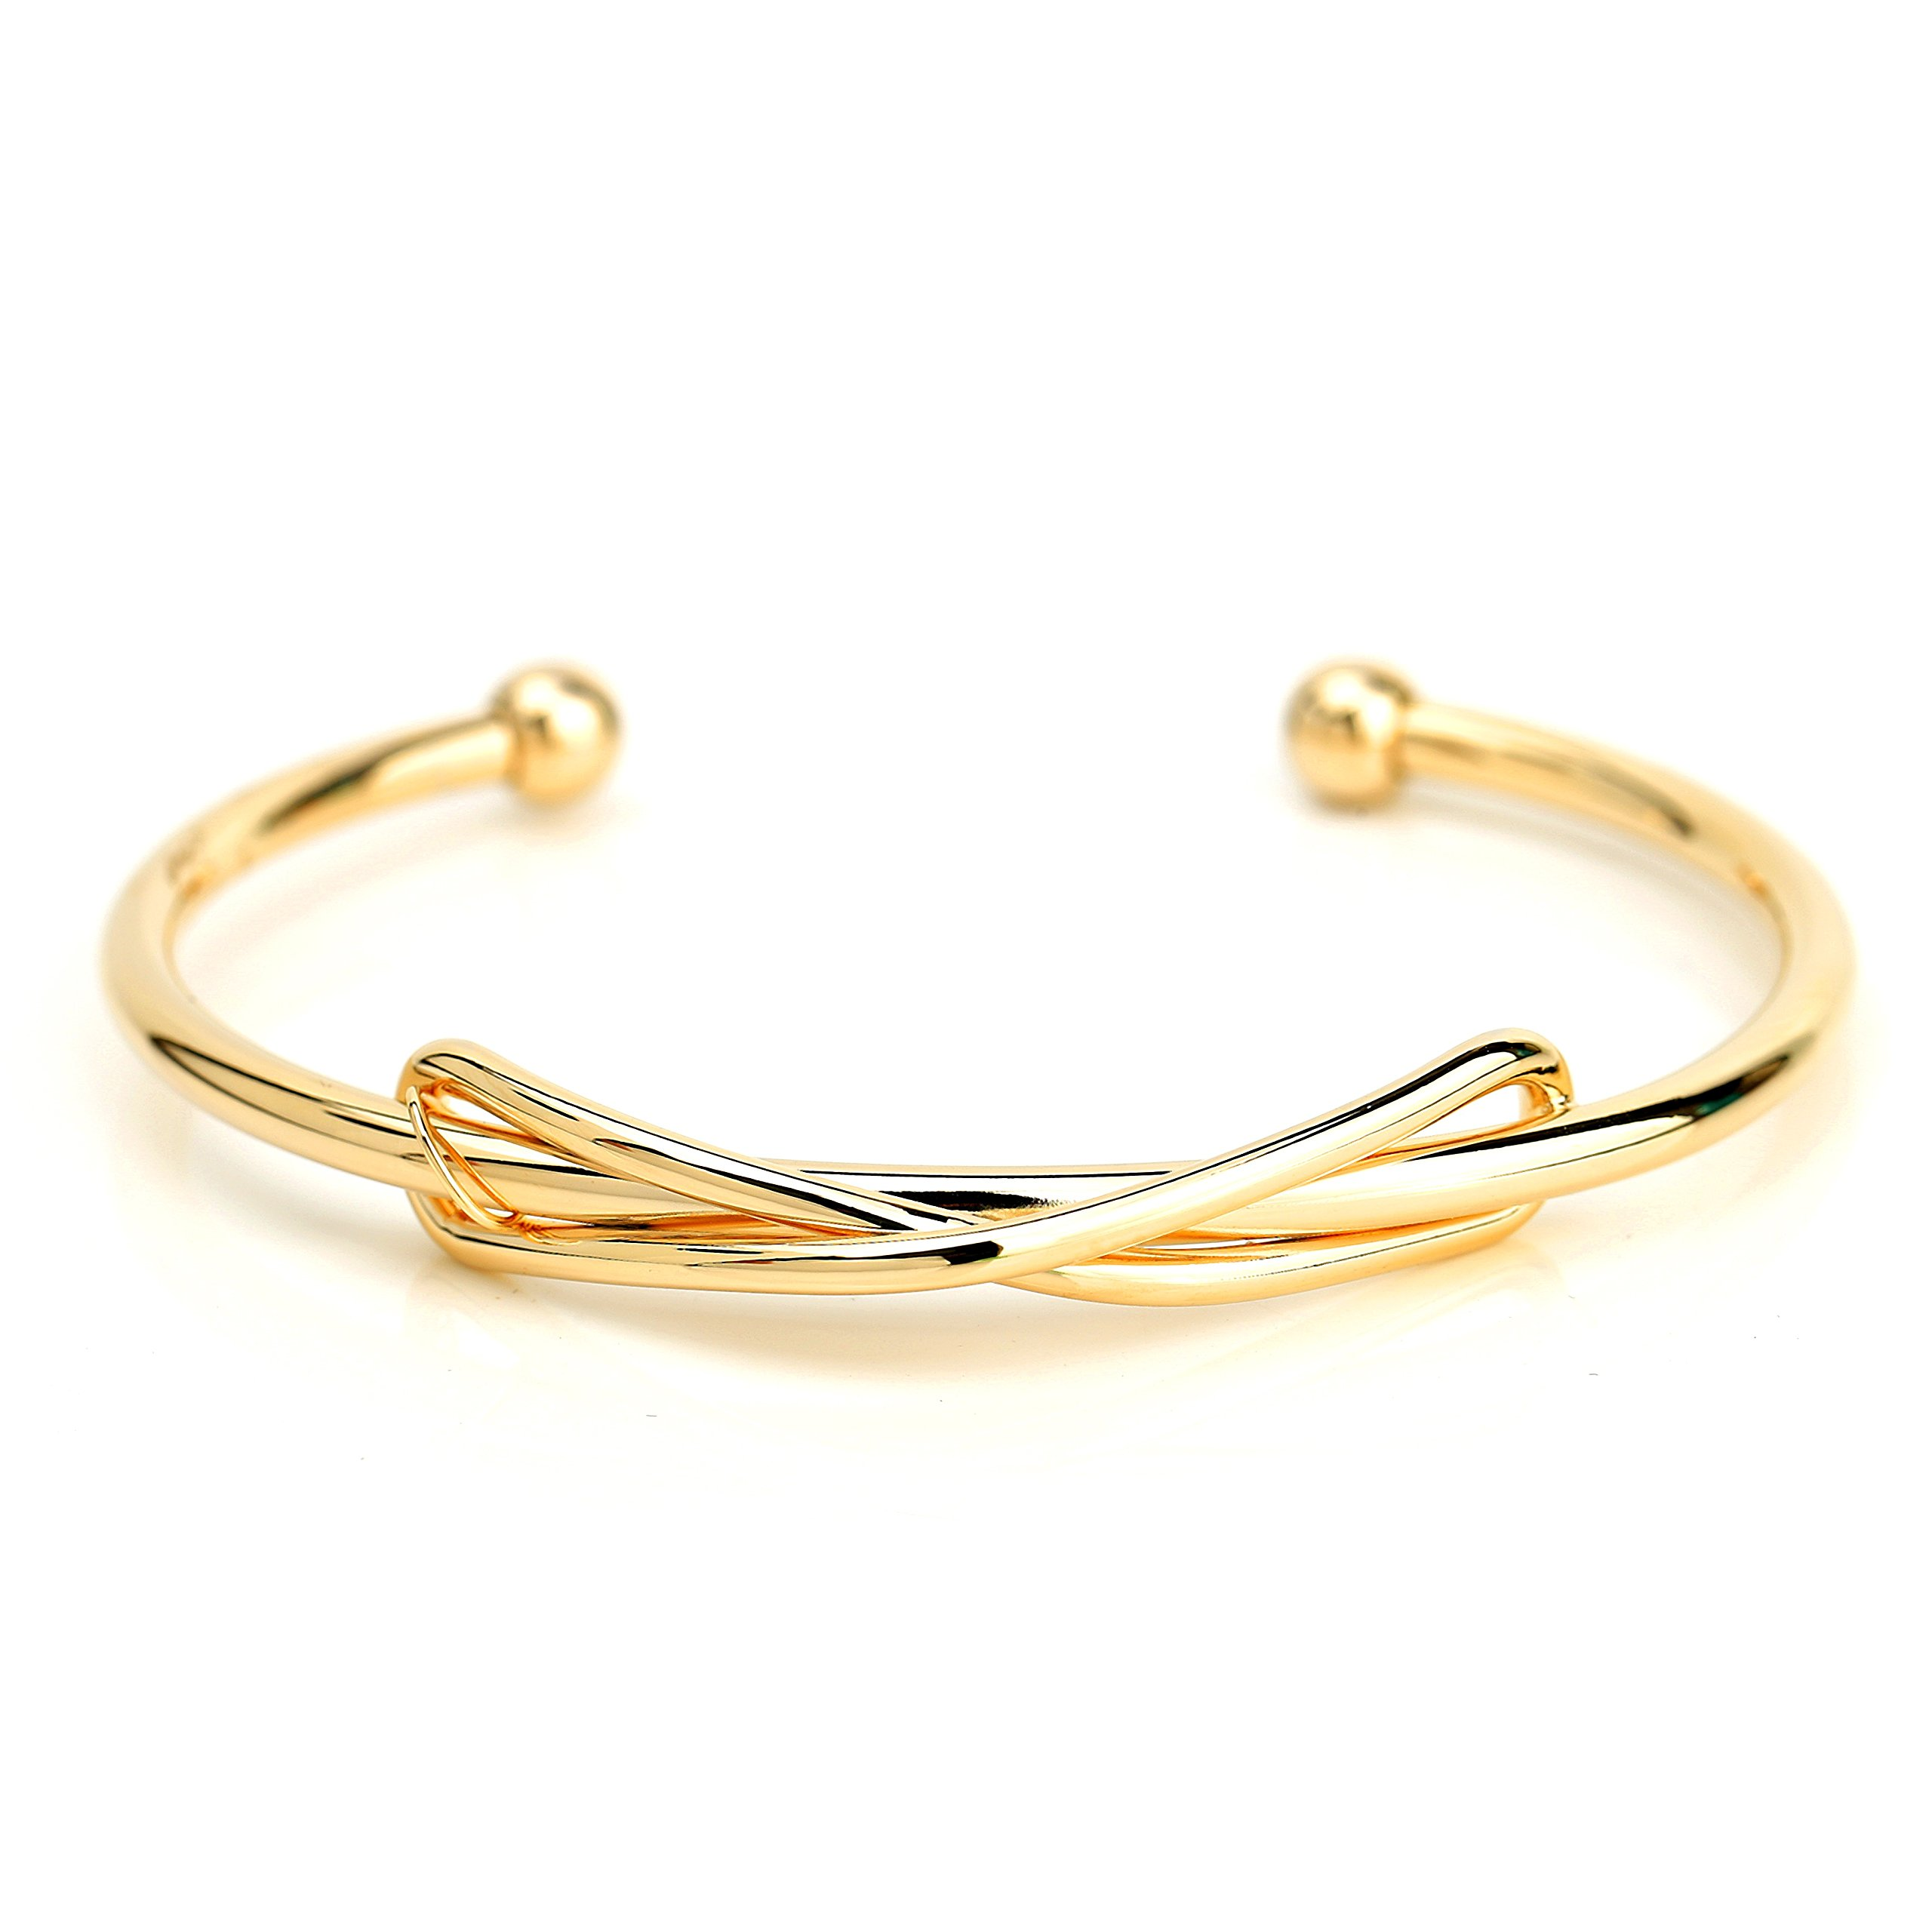 Trendy Designer Bangle Bracelet with Contemporary Infinity Design (220041)